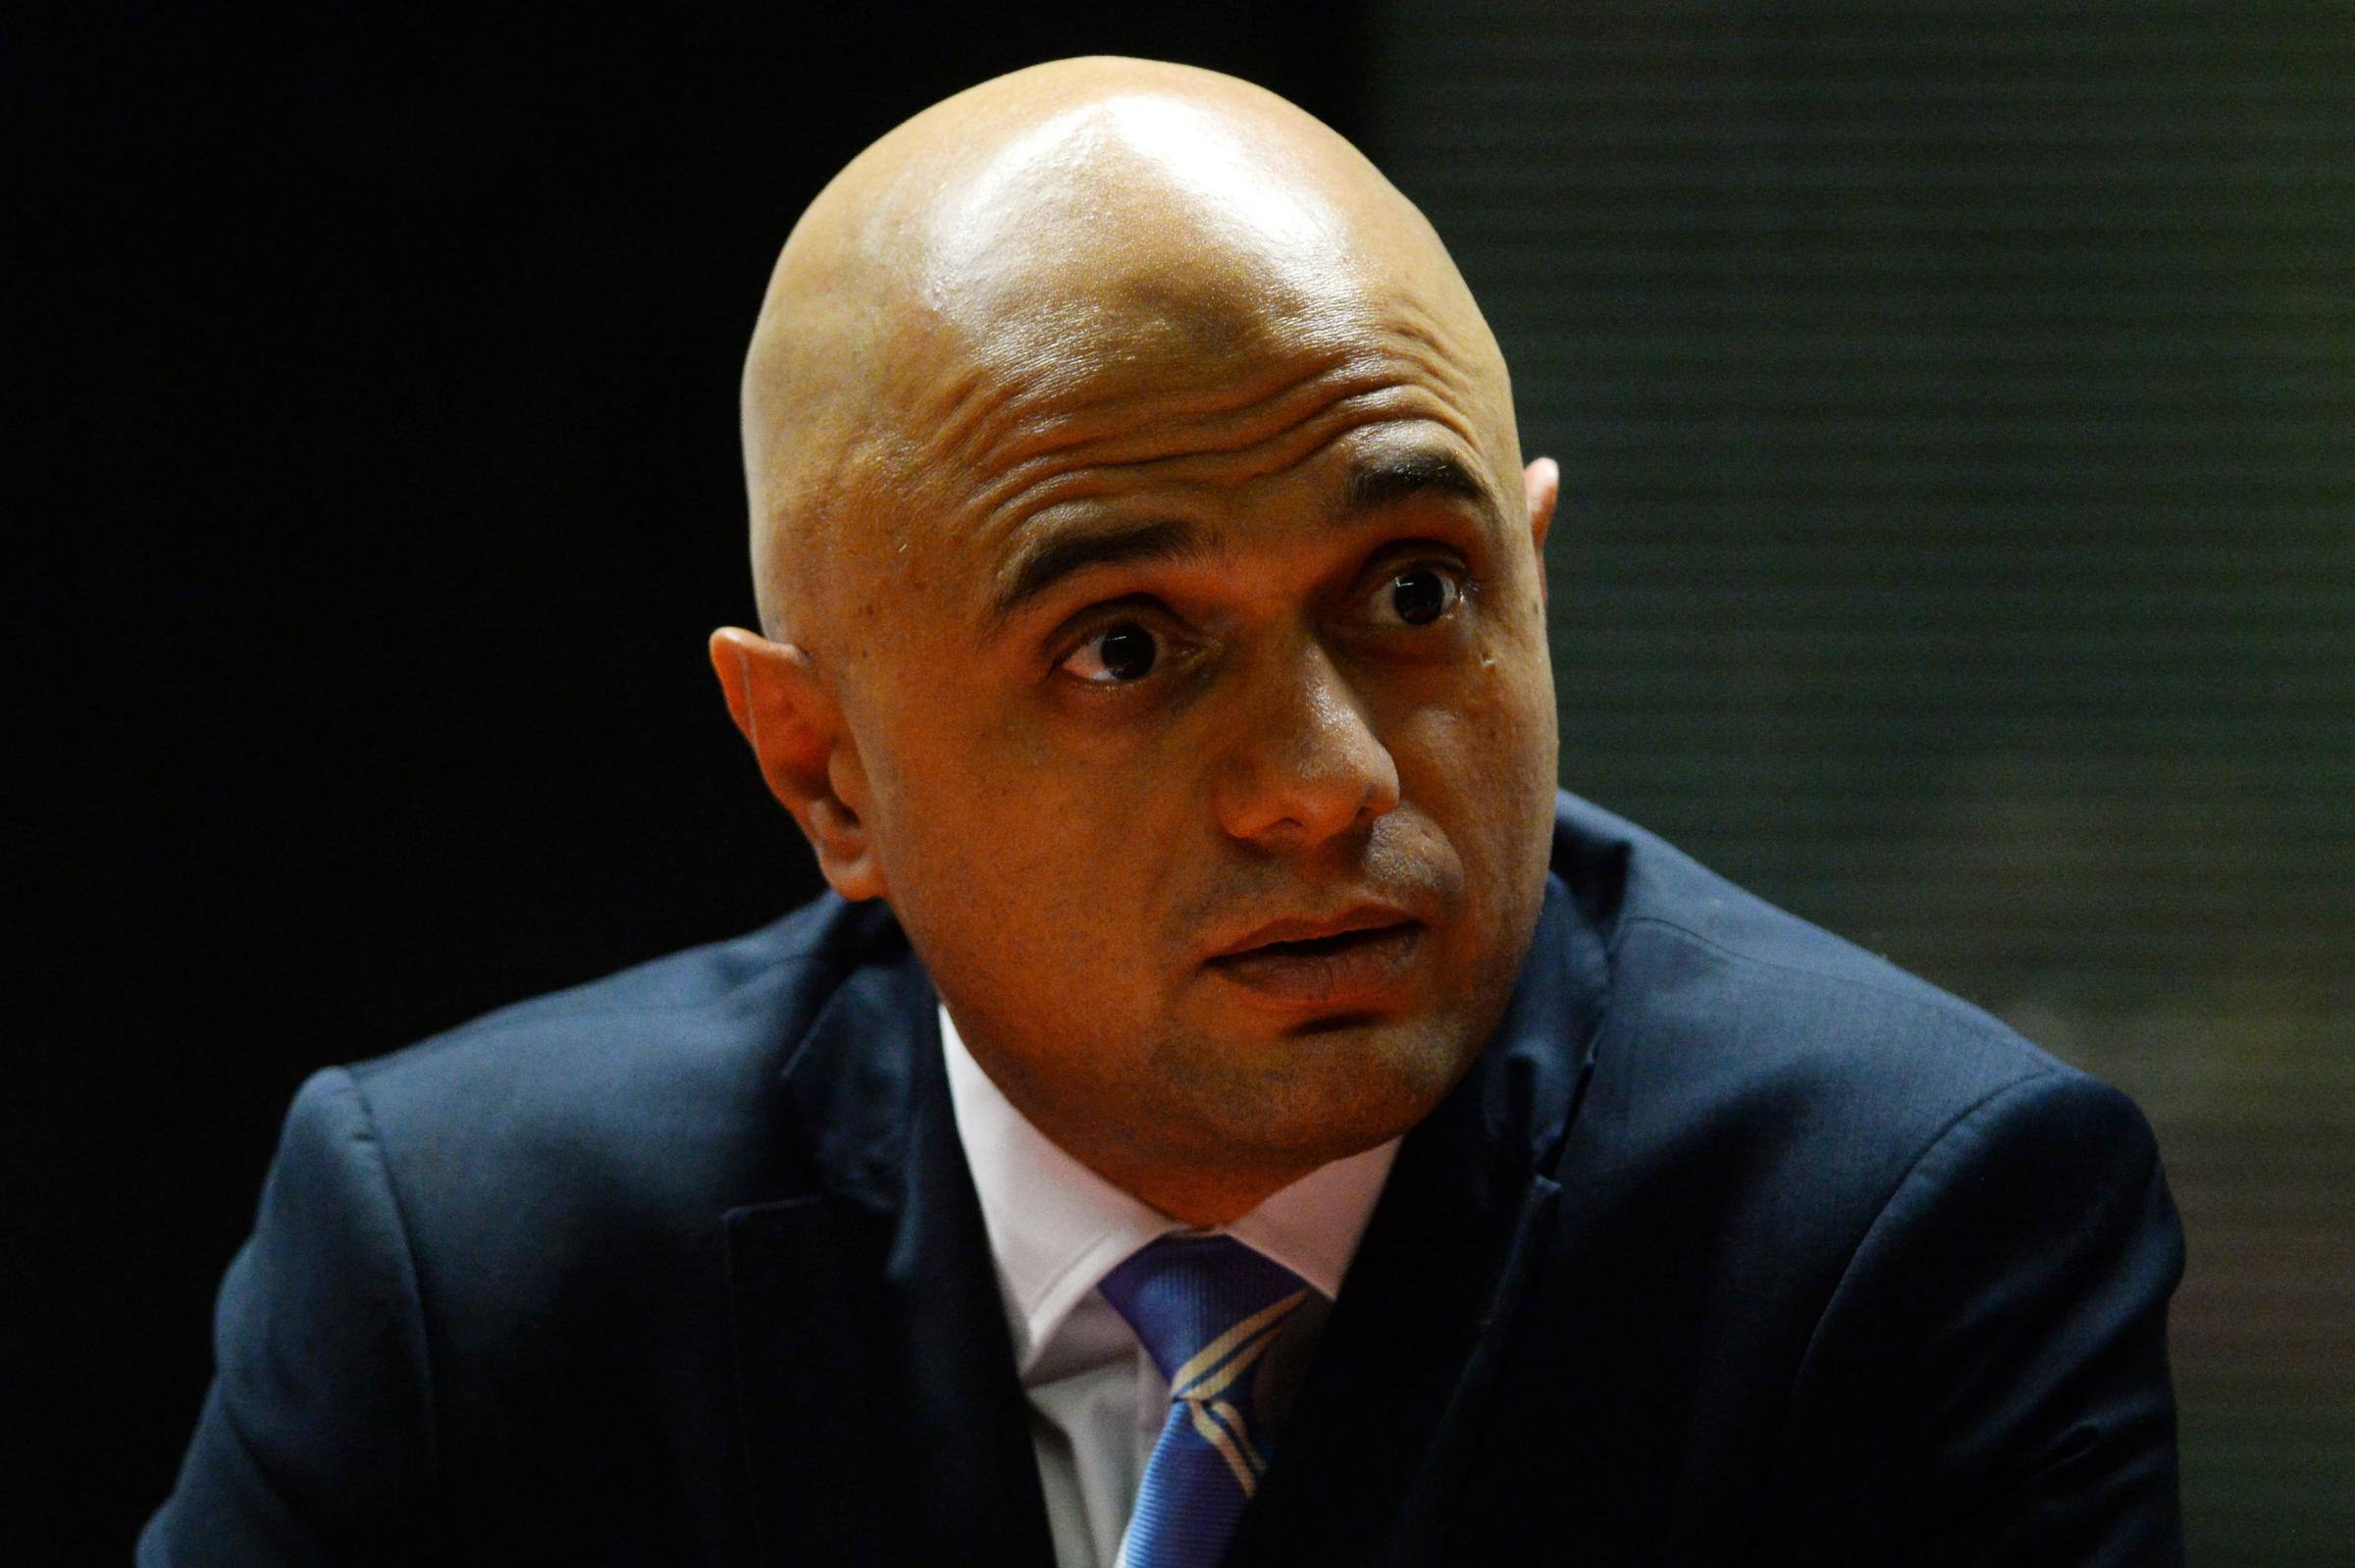 Javid: 'We must remember those who left Britain to join Daesh were full of hate for our country'